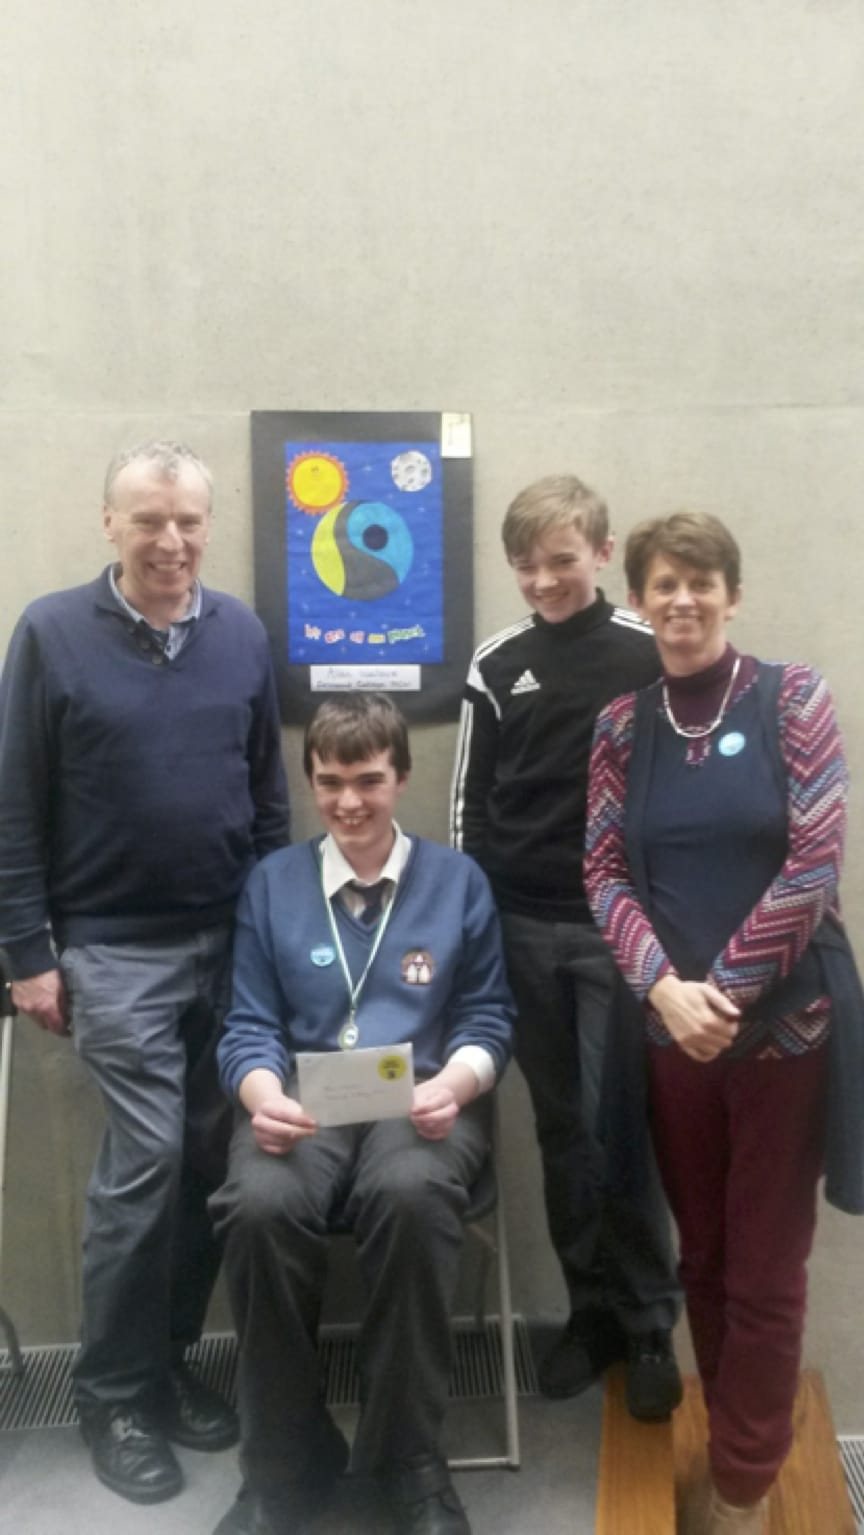 March 2017: Alan Wallace pictured with his family after receiving his award from the Mayor of Limerick after winning in the Fair-Trade Poster Competition.